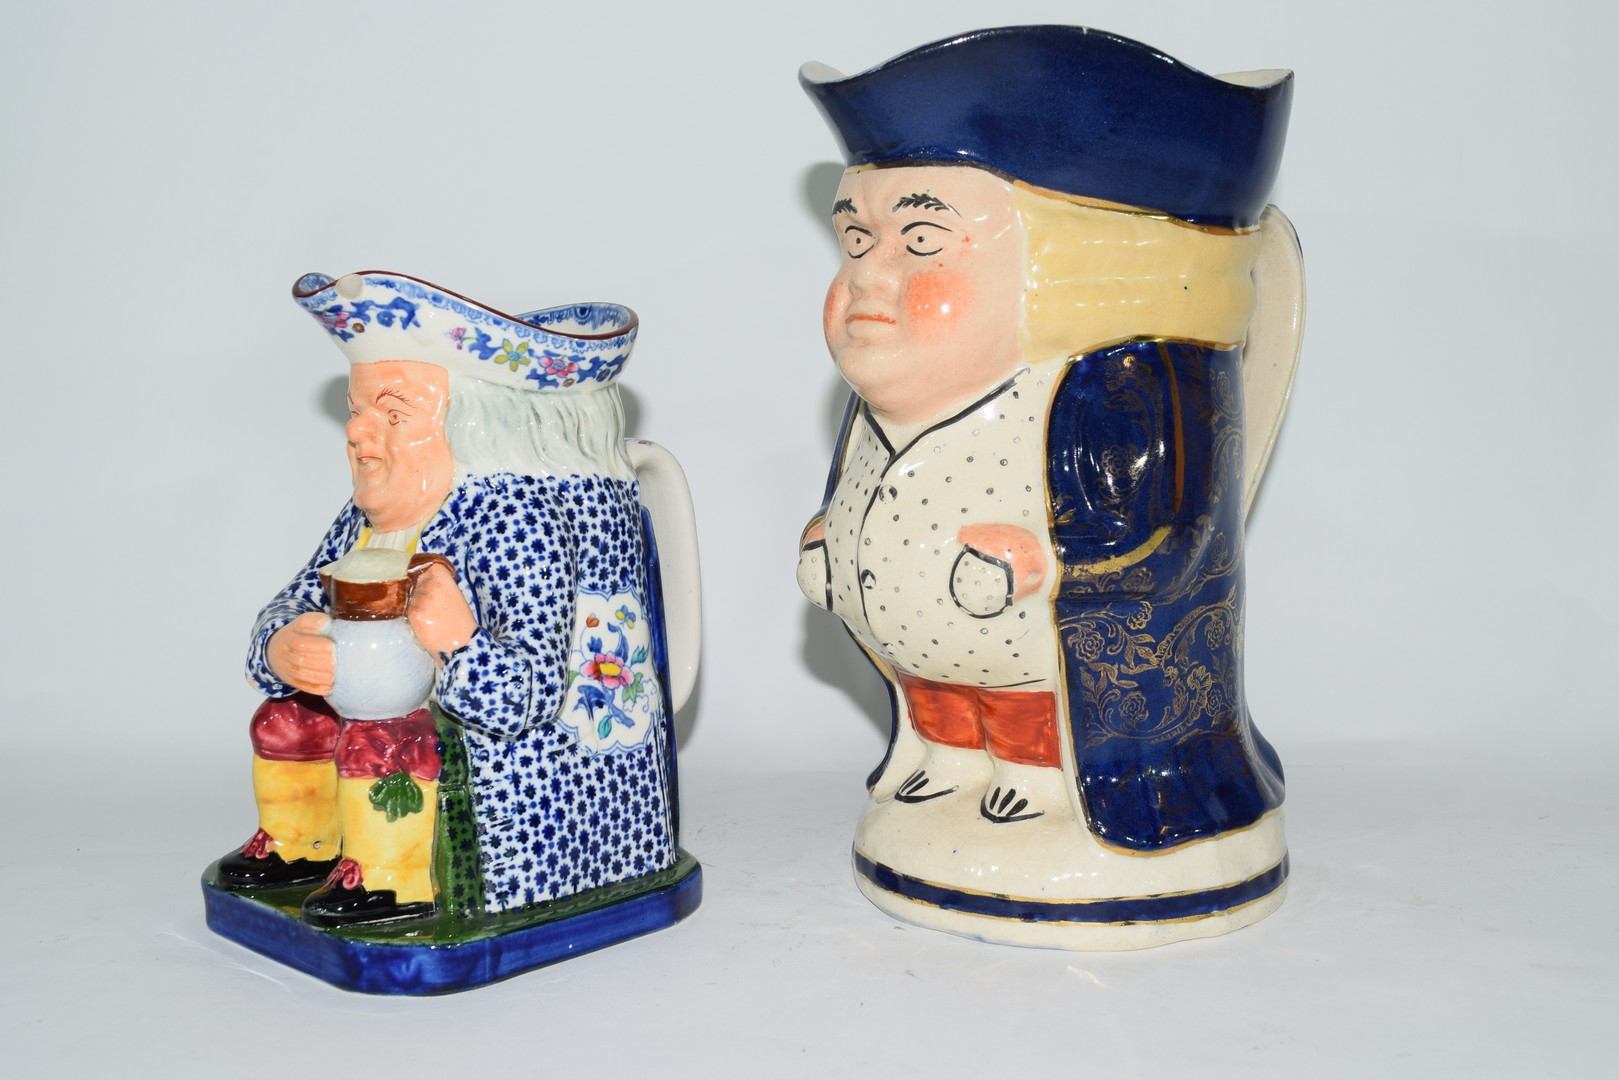 Two English pottery Staffordshire type Toby jugs